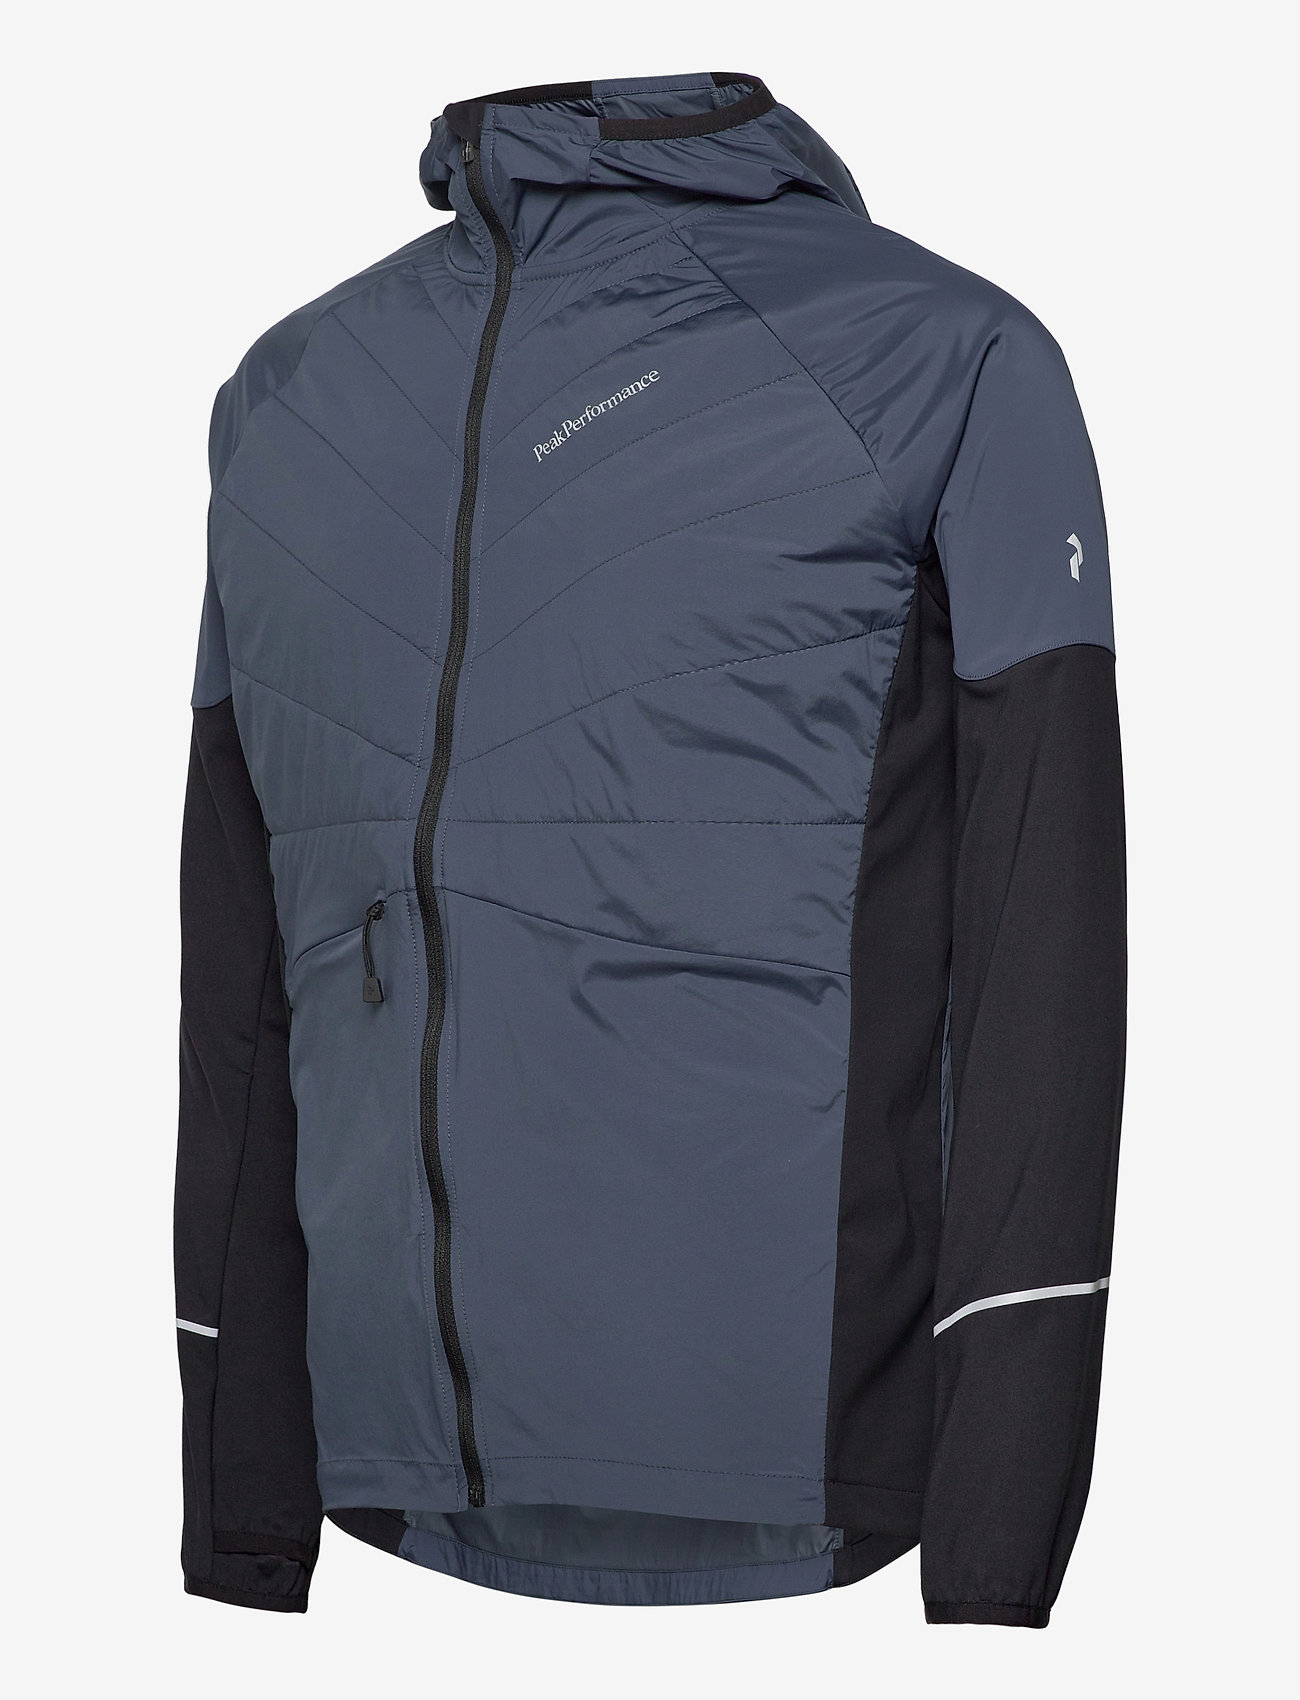 Peak Performance M Alum Jacket Blue Steel - Jakker og frakker BLUE STEEL - Menn Klær